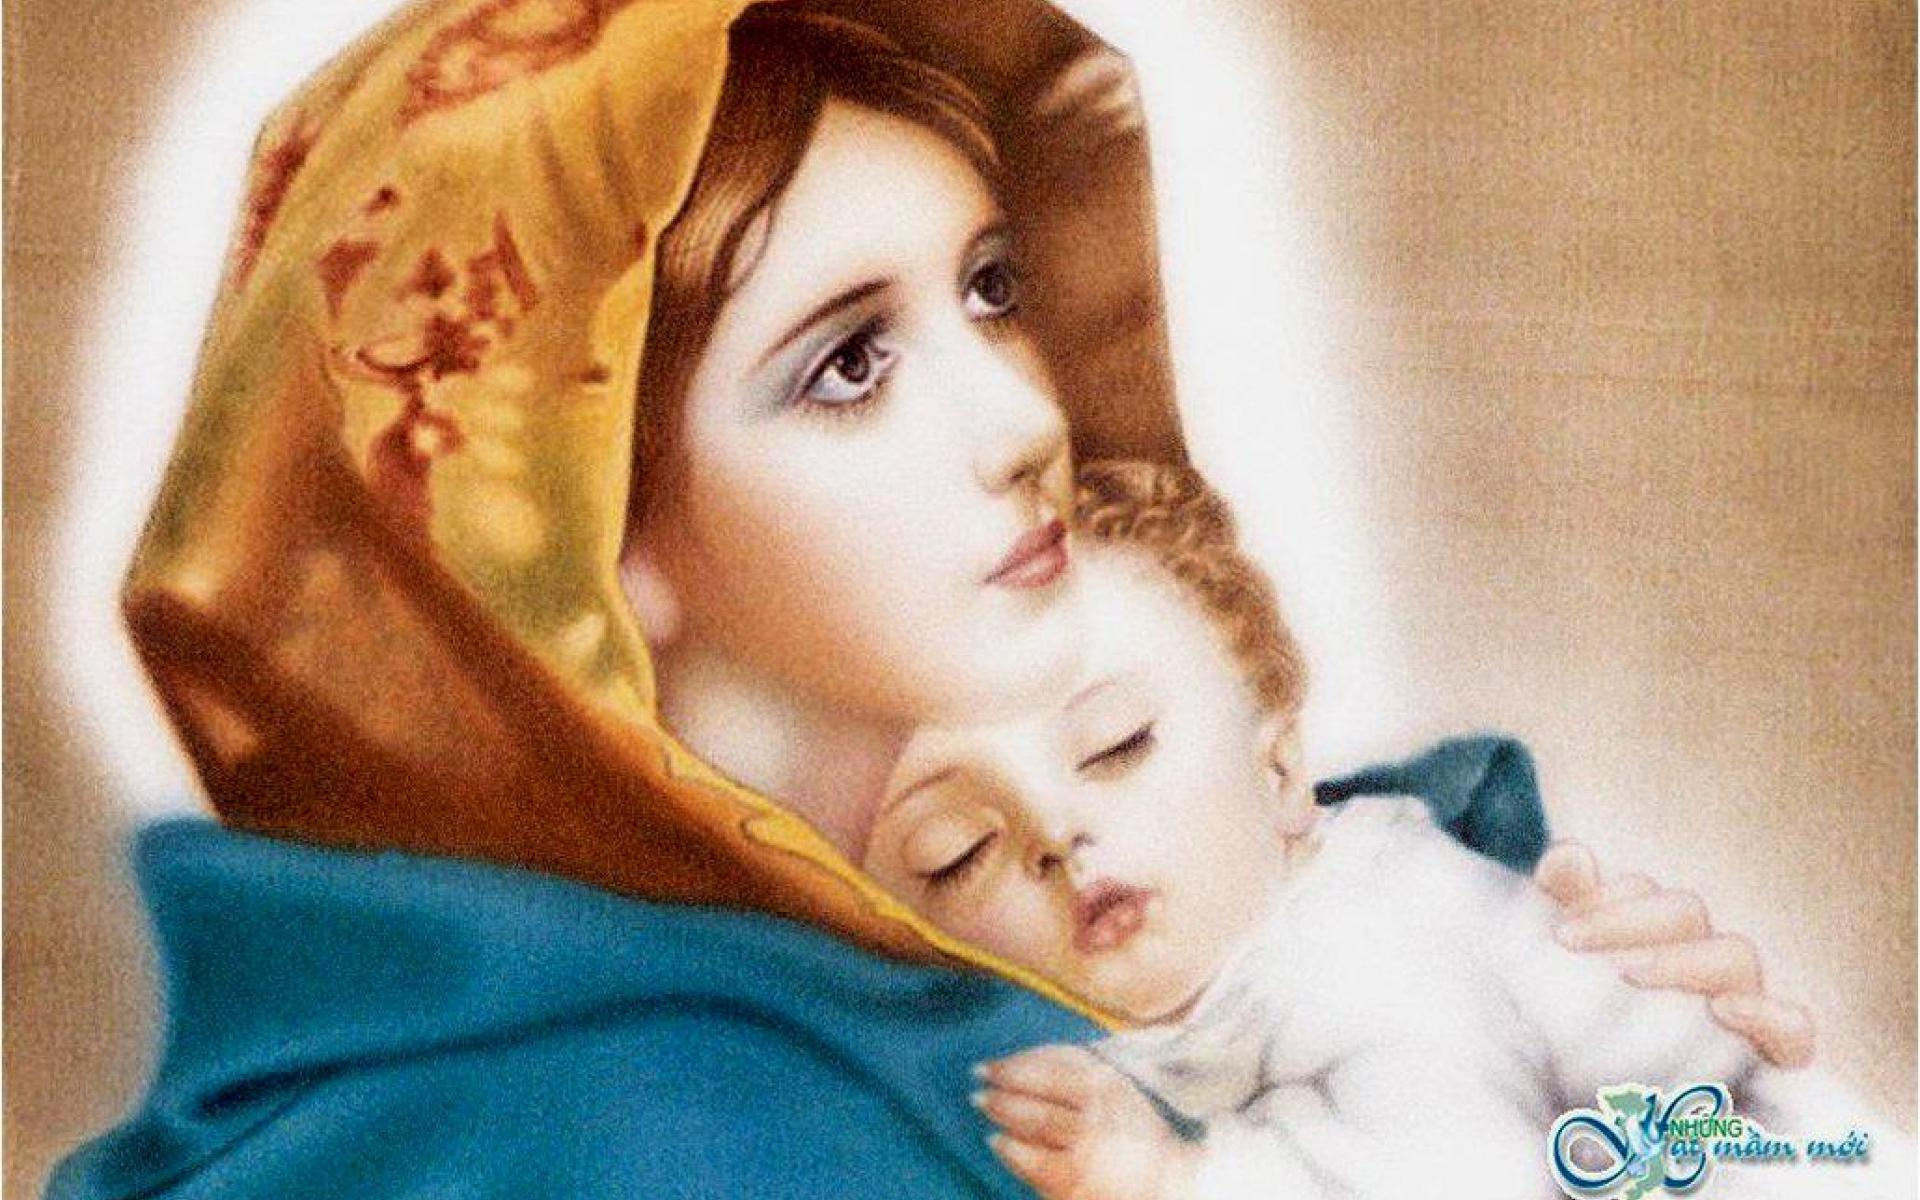 Mother Mary With Baby Jesus Wallpaper - WallpaperSafari